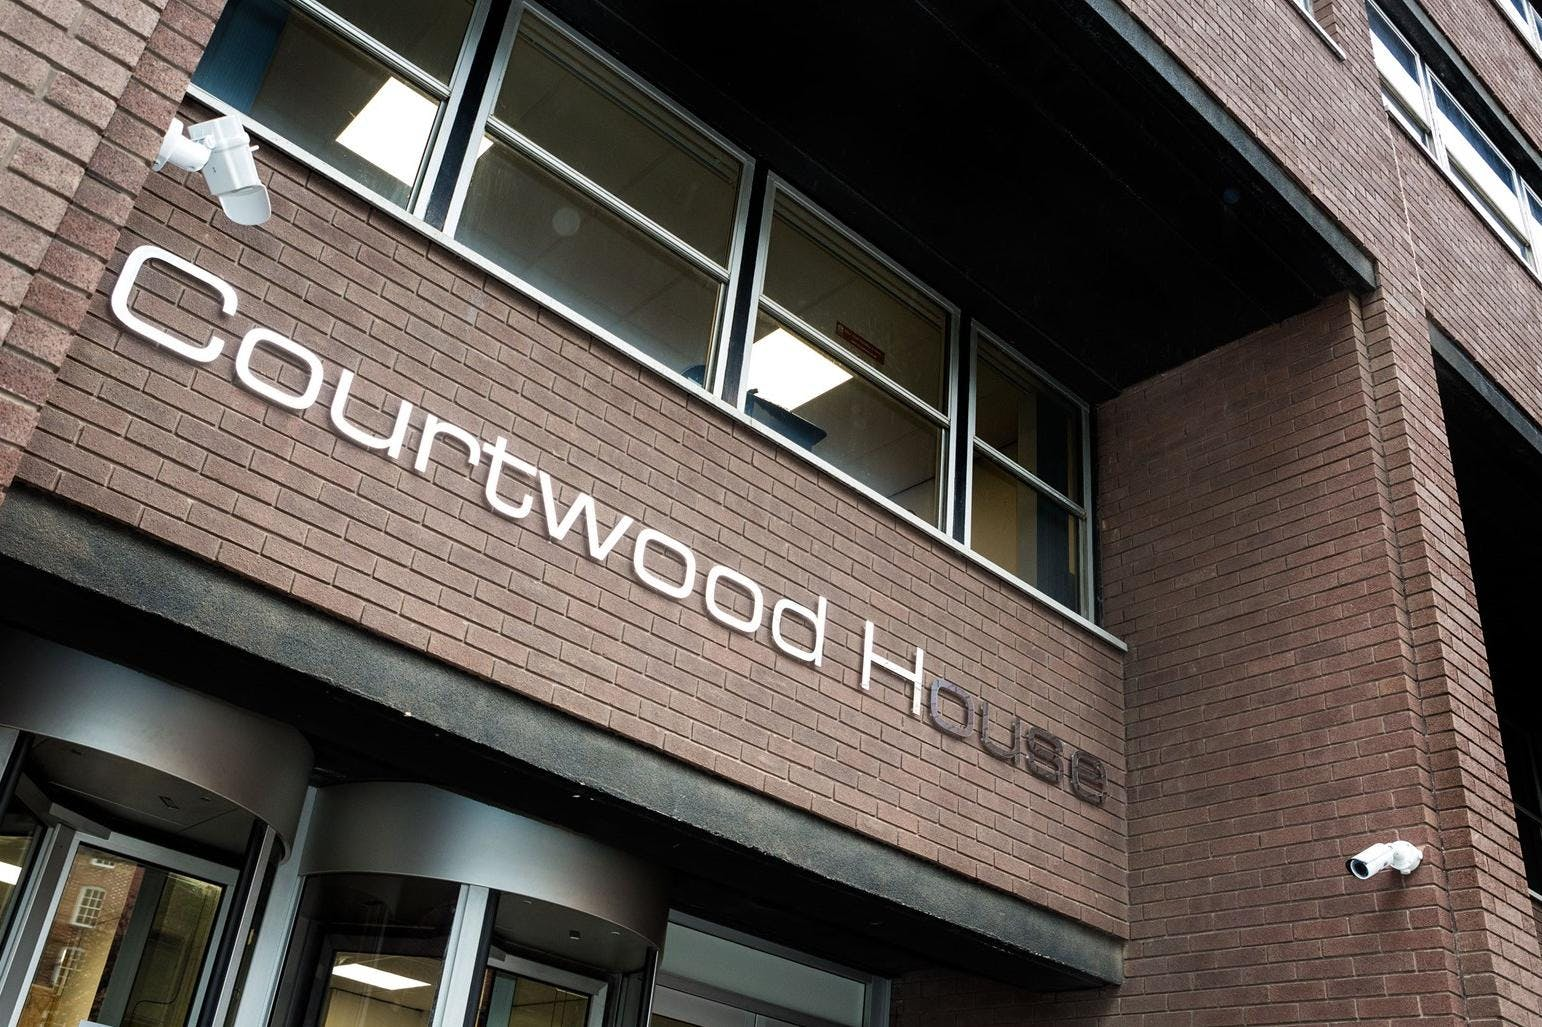 Courtwood House, Silver Street Head, Sheffield, Offices To Let - Courtwood Entrance 2.jpg